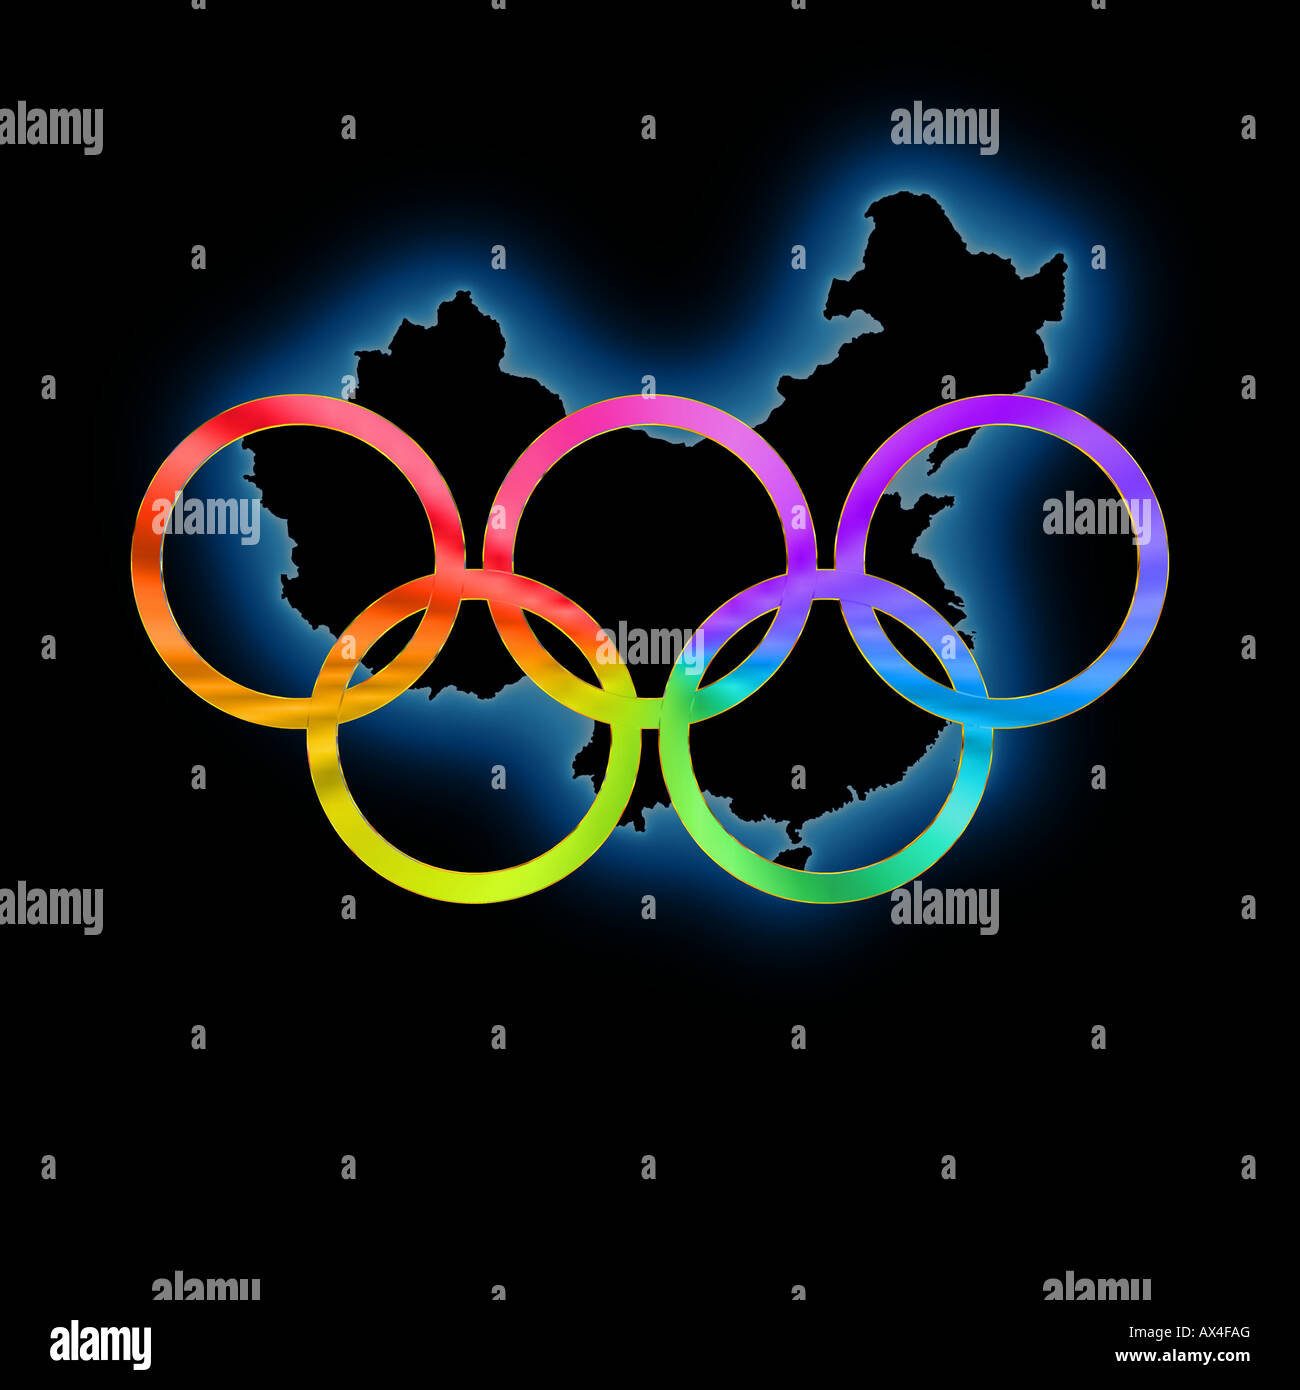 the gallery for gt olympic rings logo black background